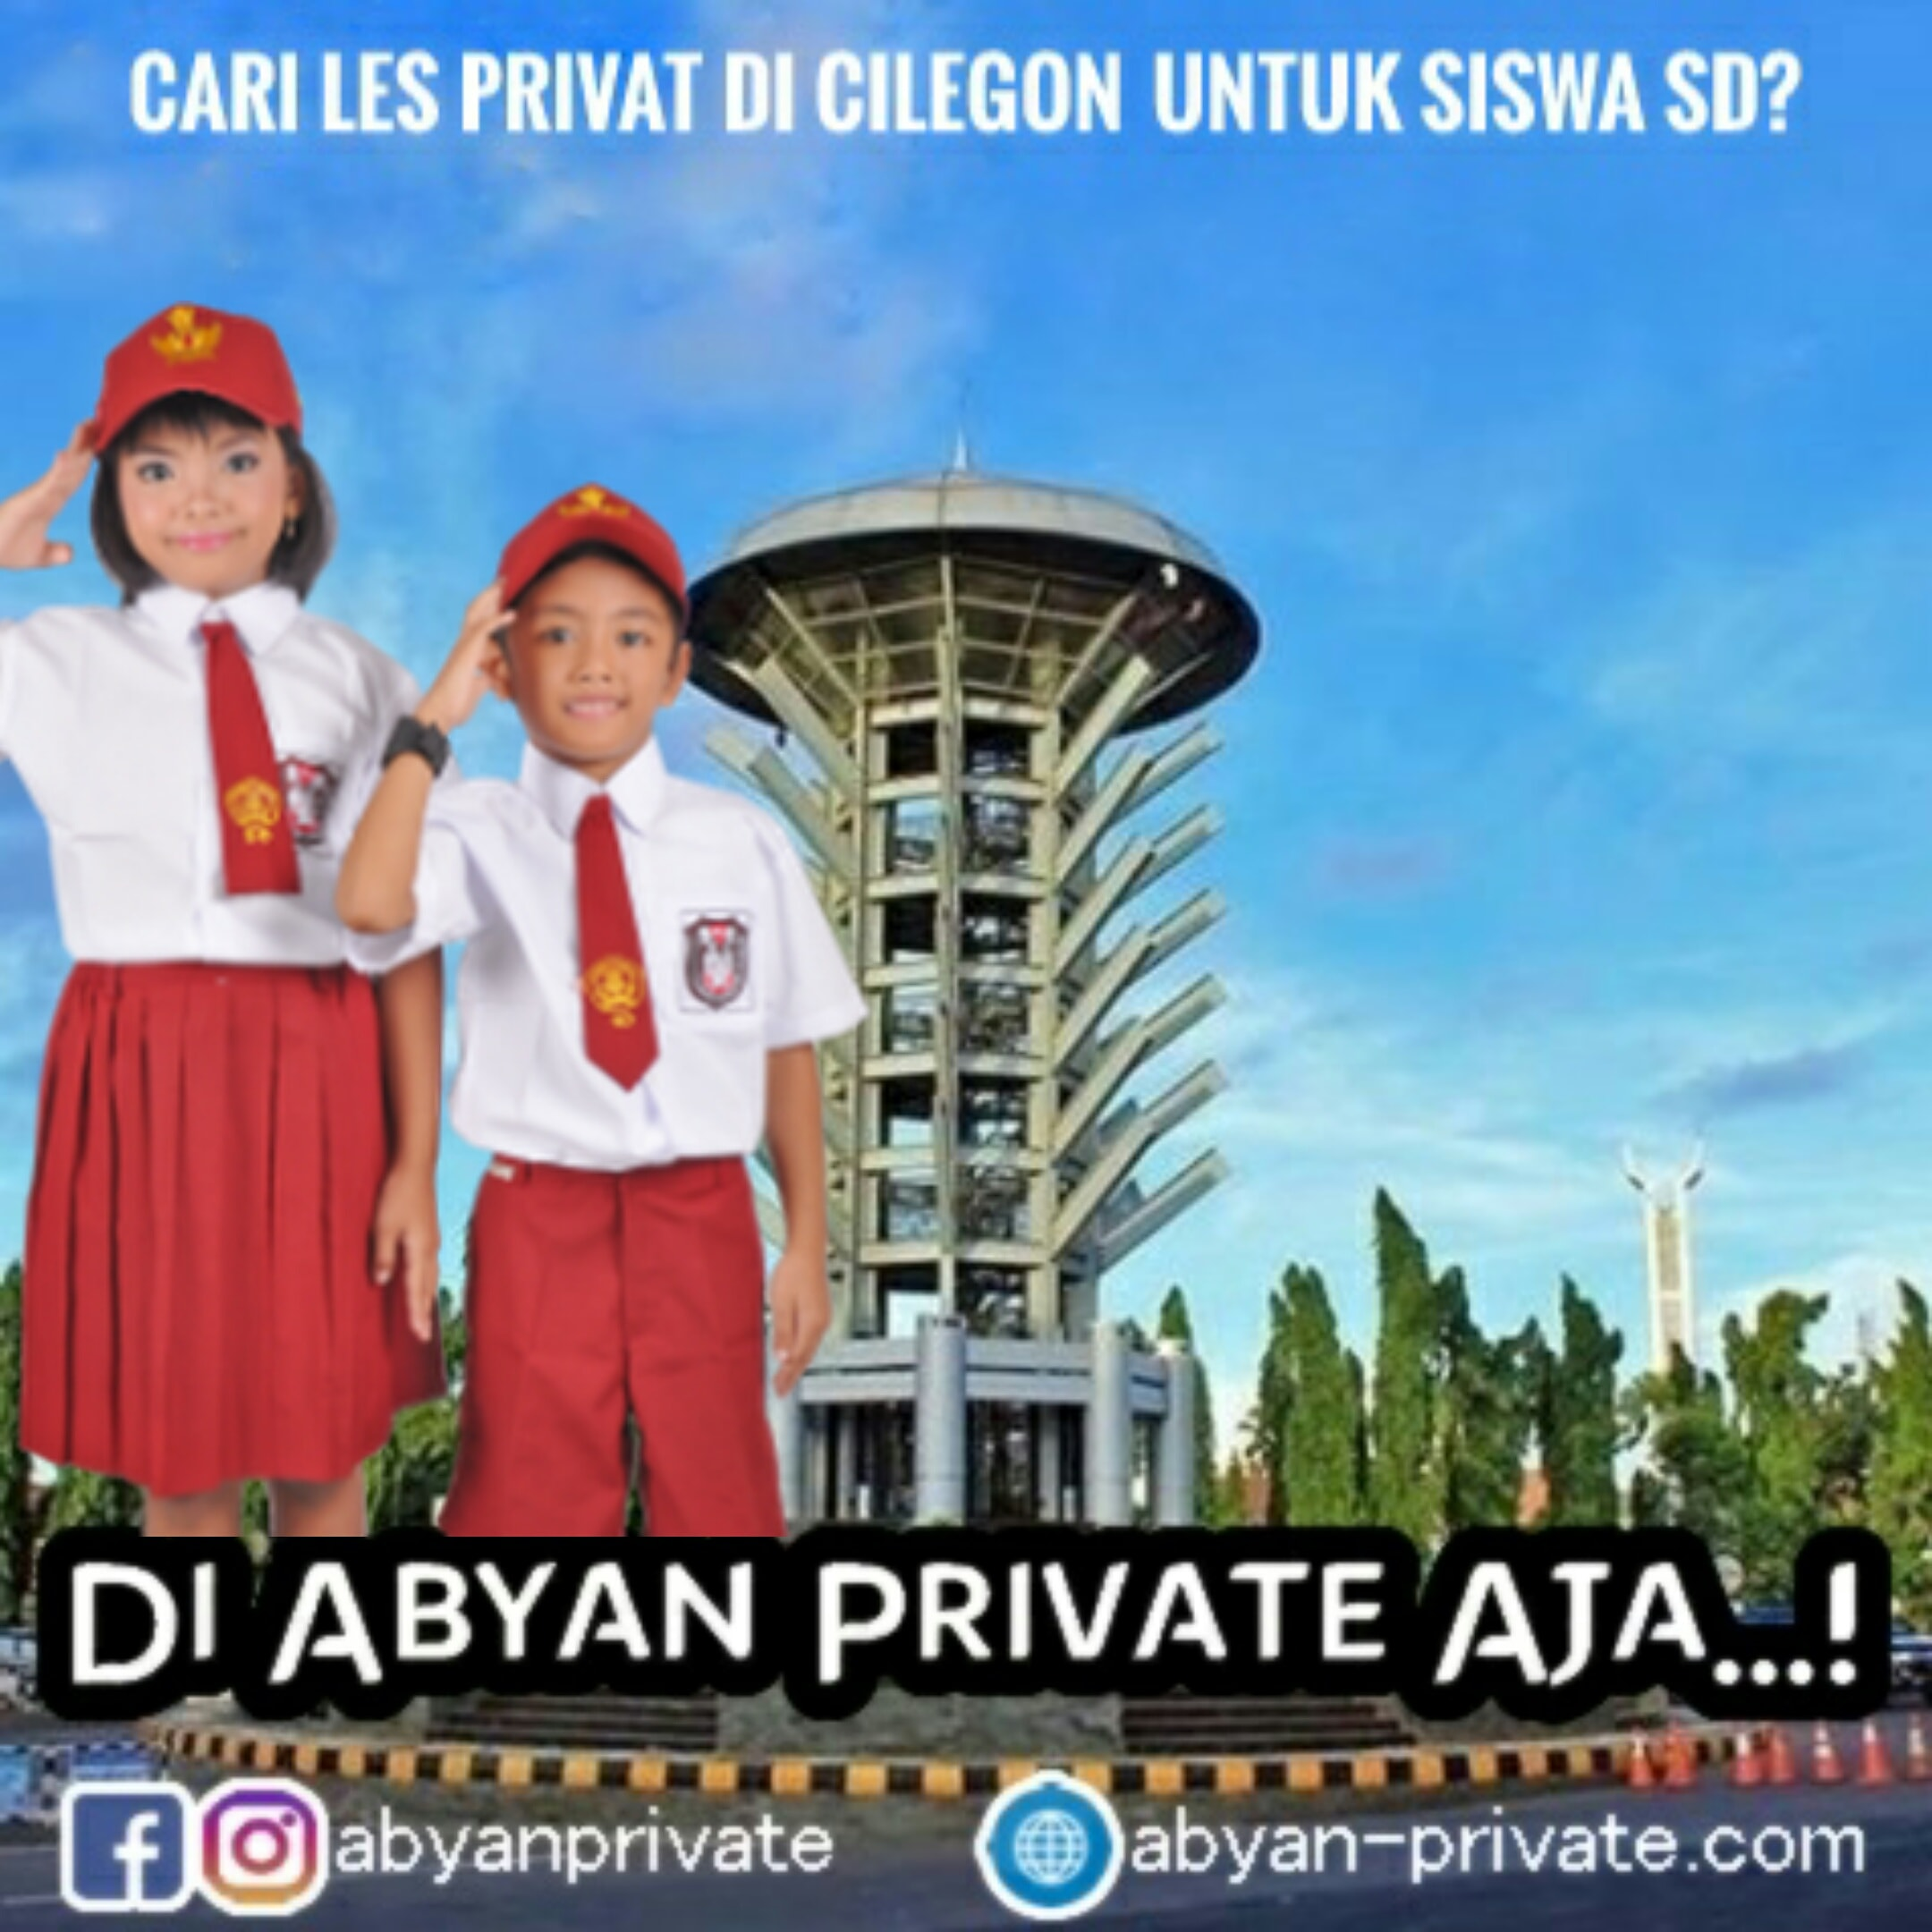 Les privat di cilegon